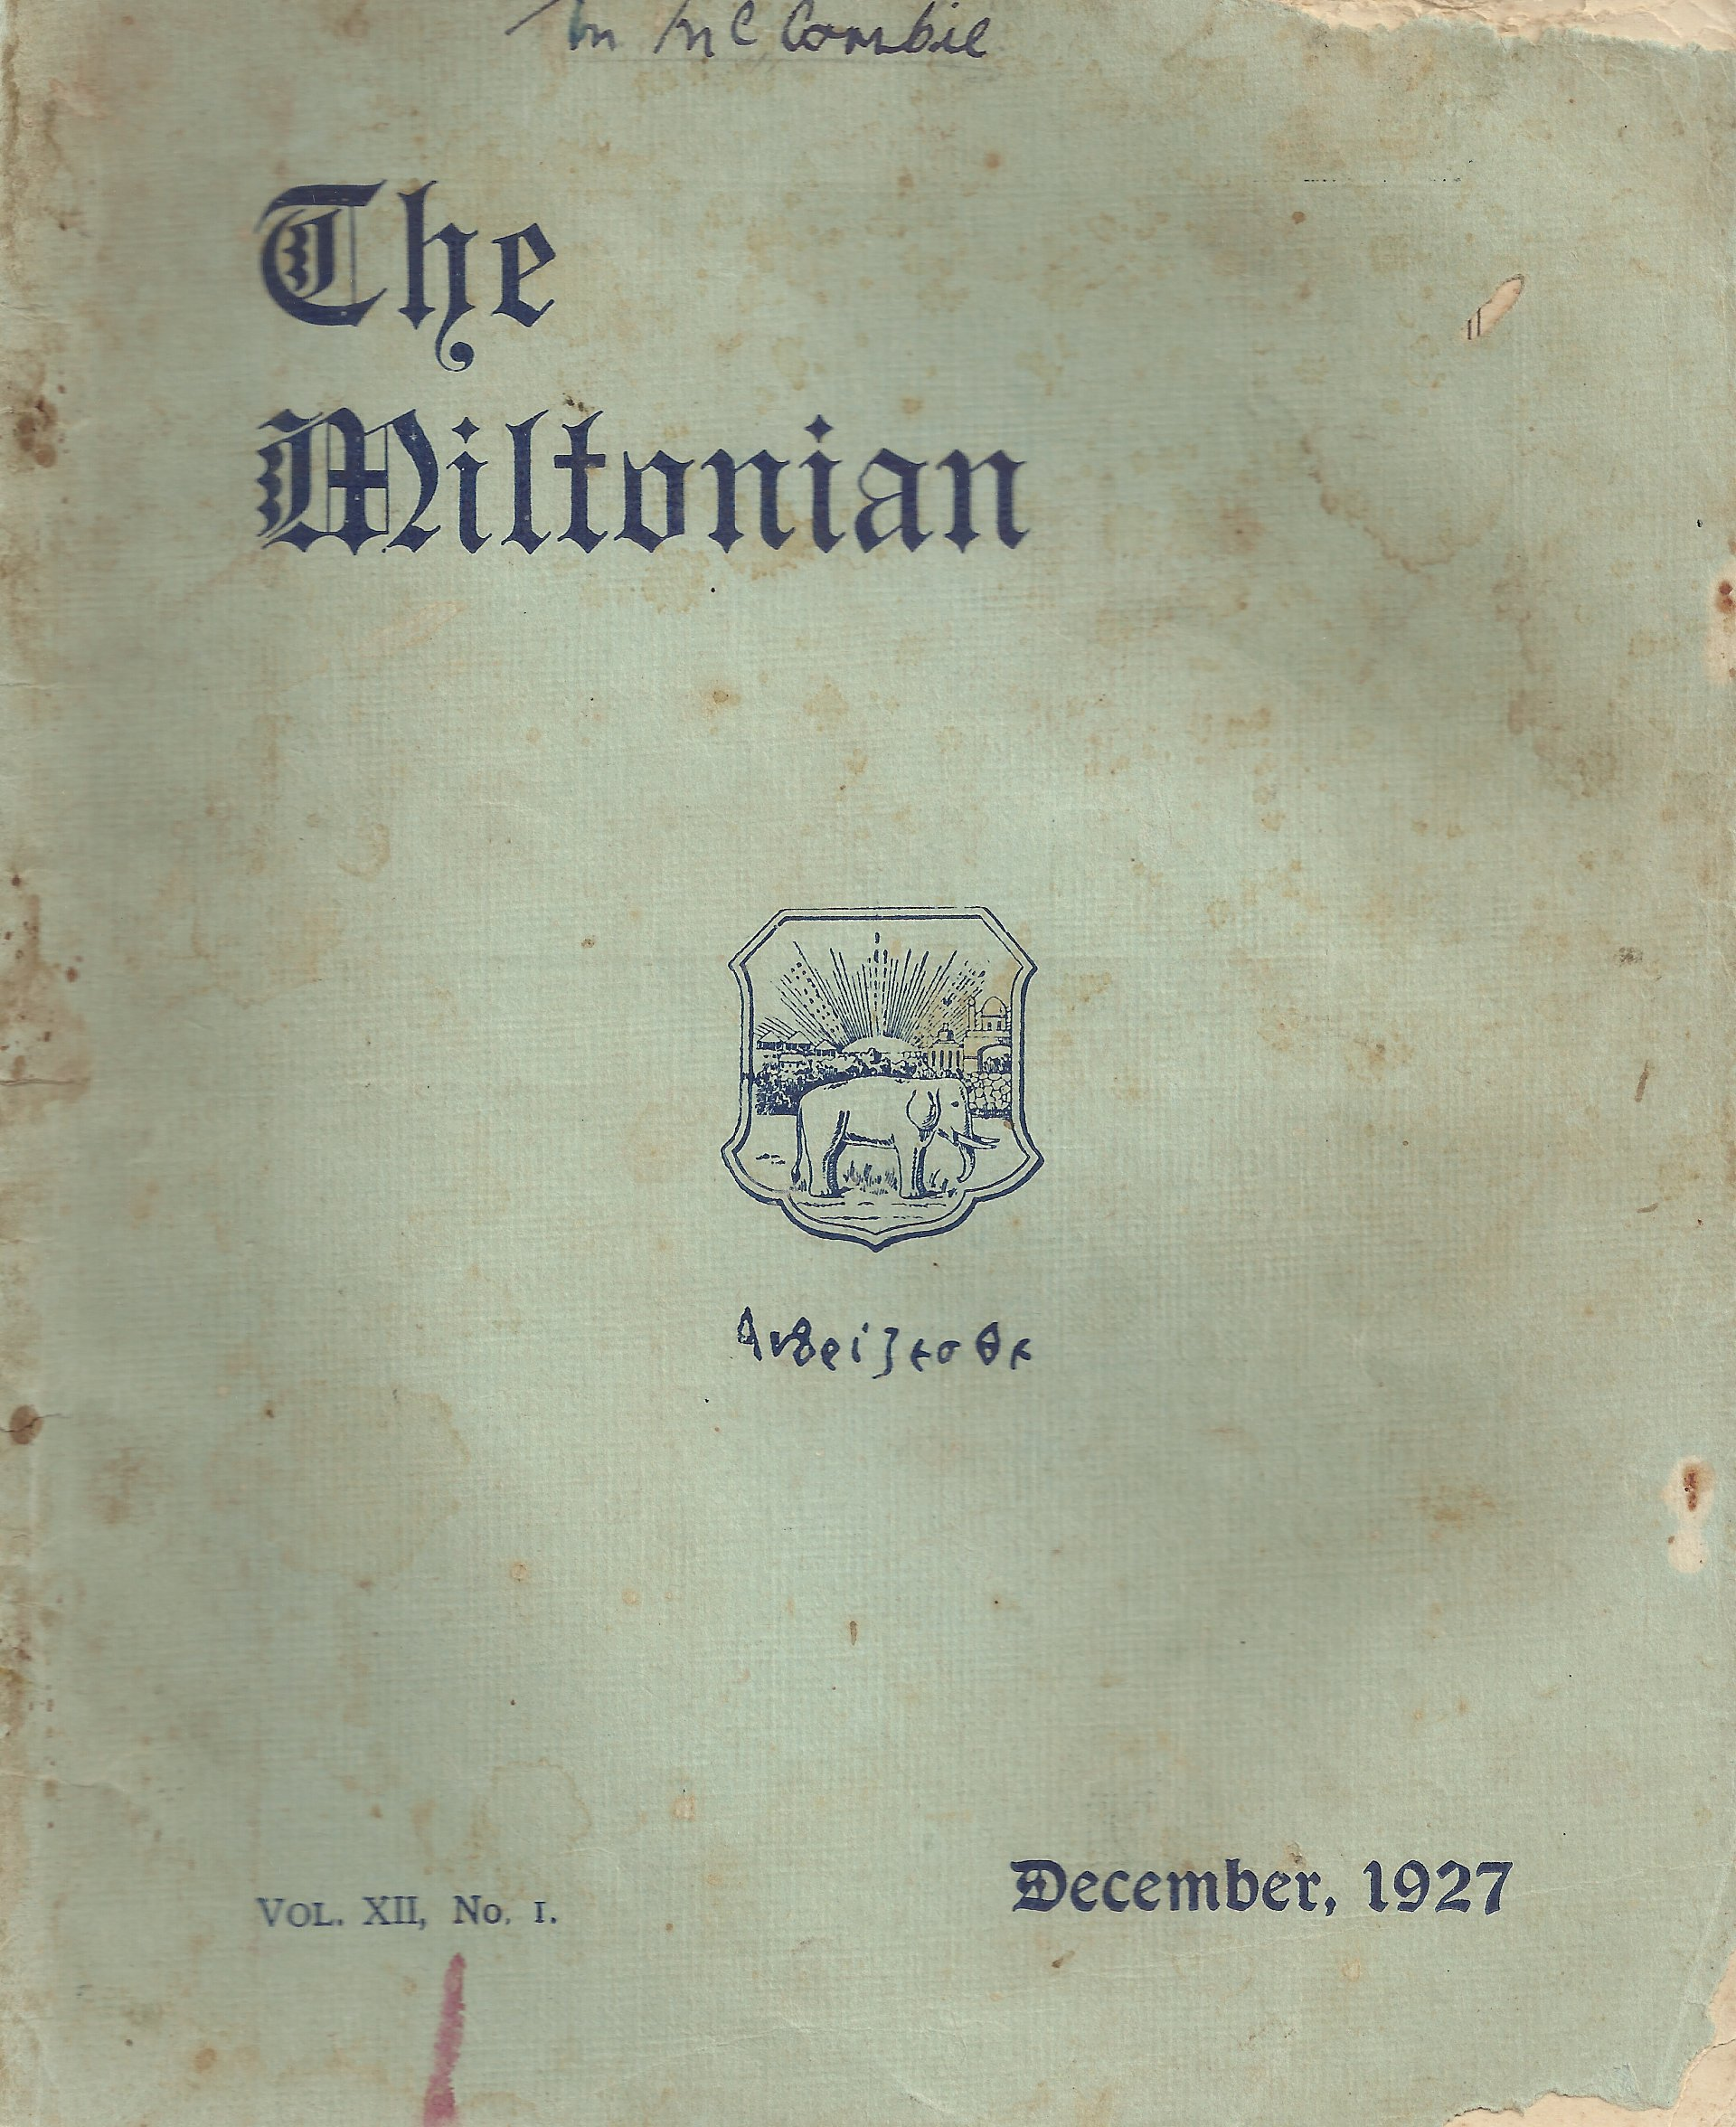 1927_dec_vol_XII_no1